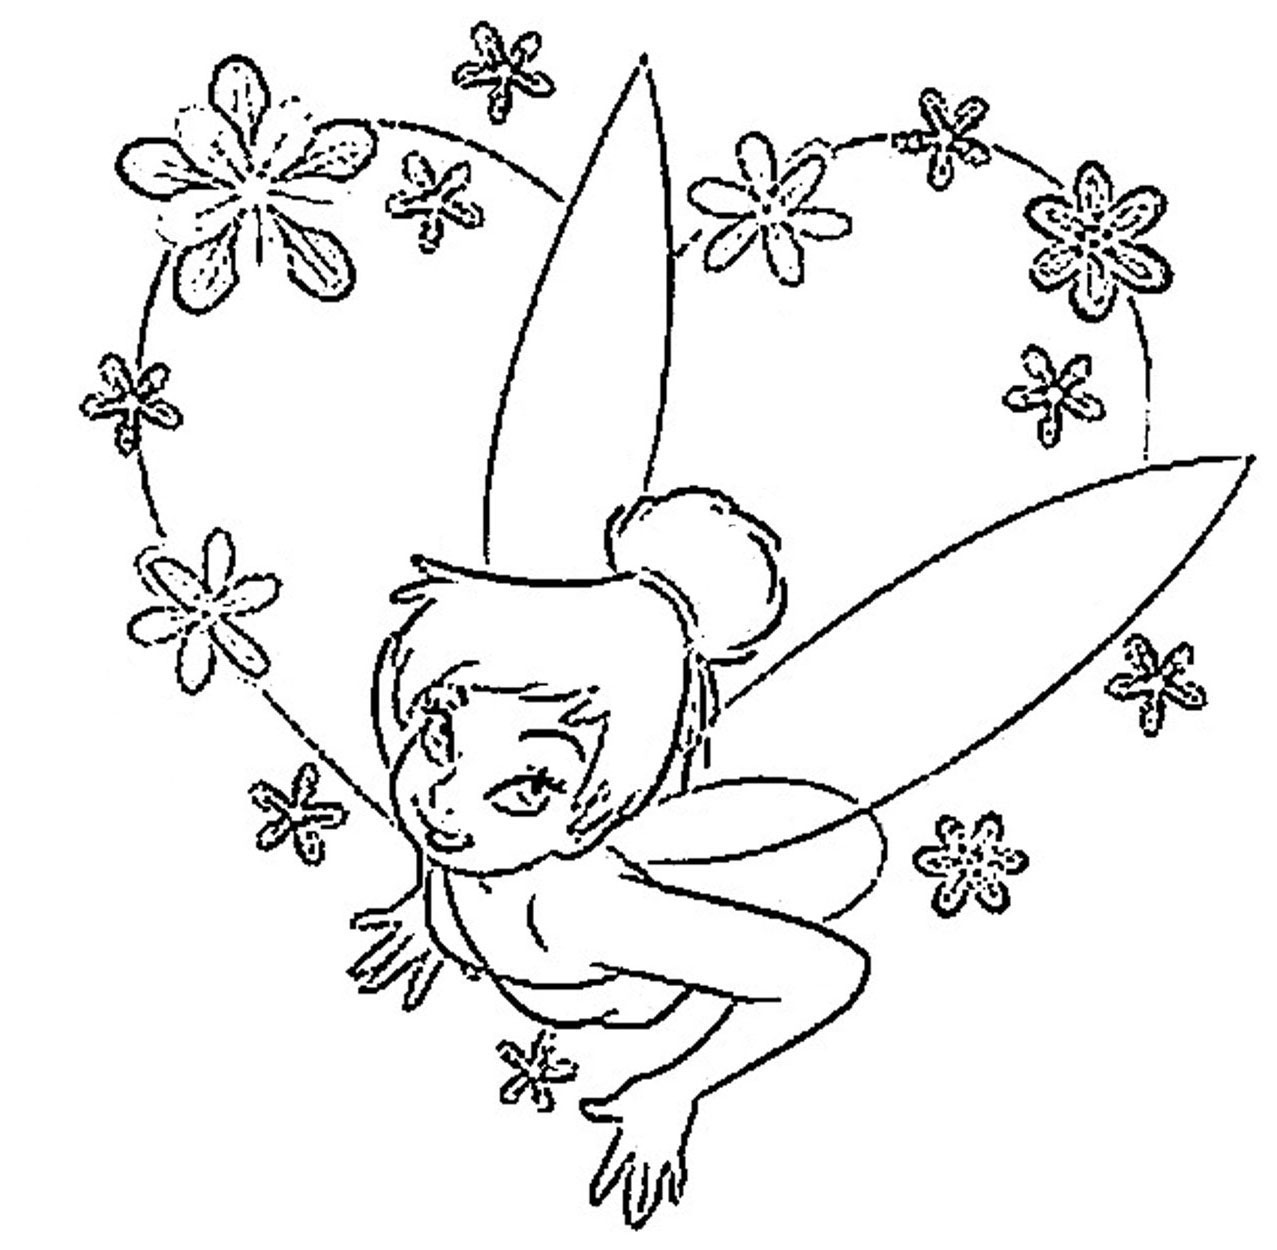 find thousands of disney princess coloring pages to print and color - Pictures For Children To Colour In Disney